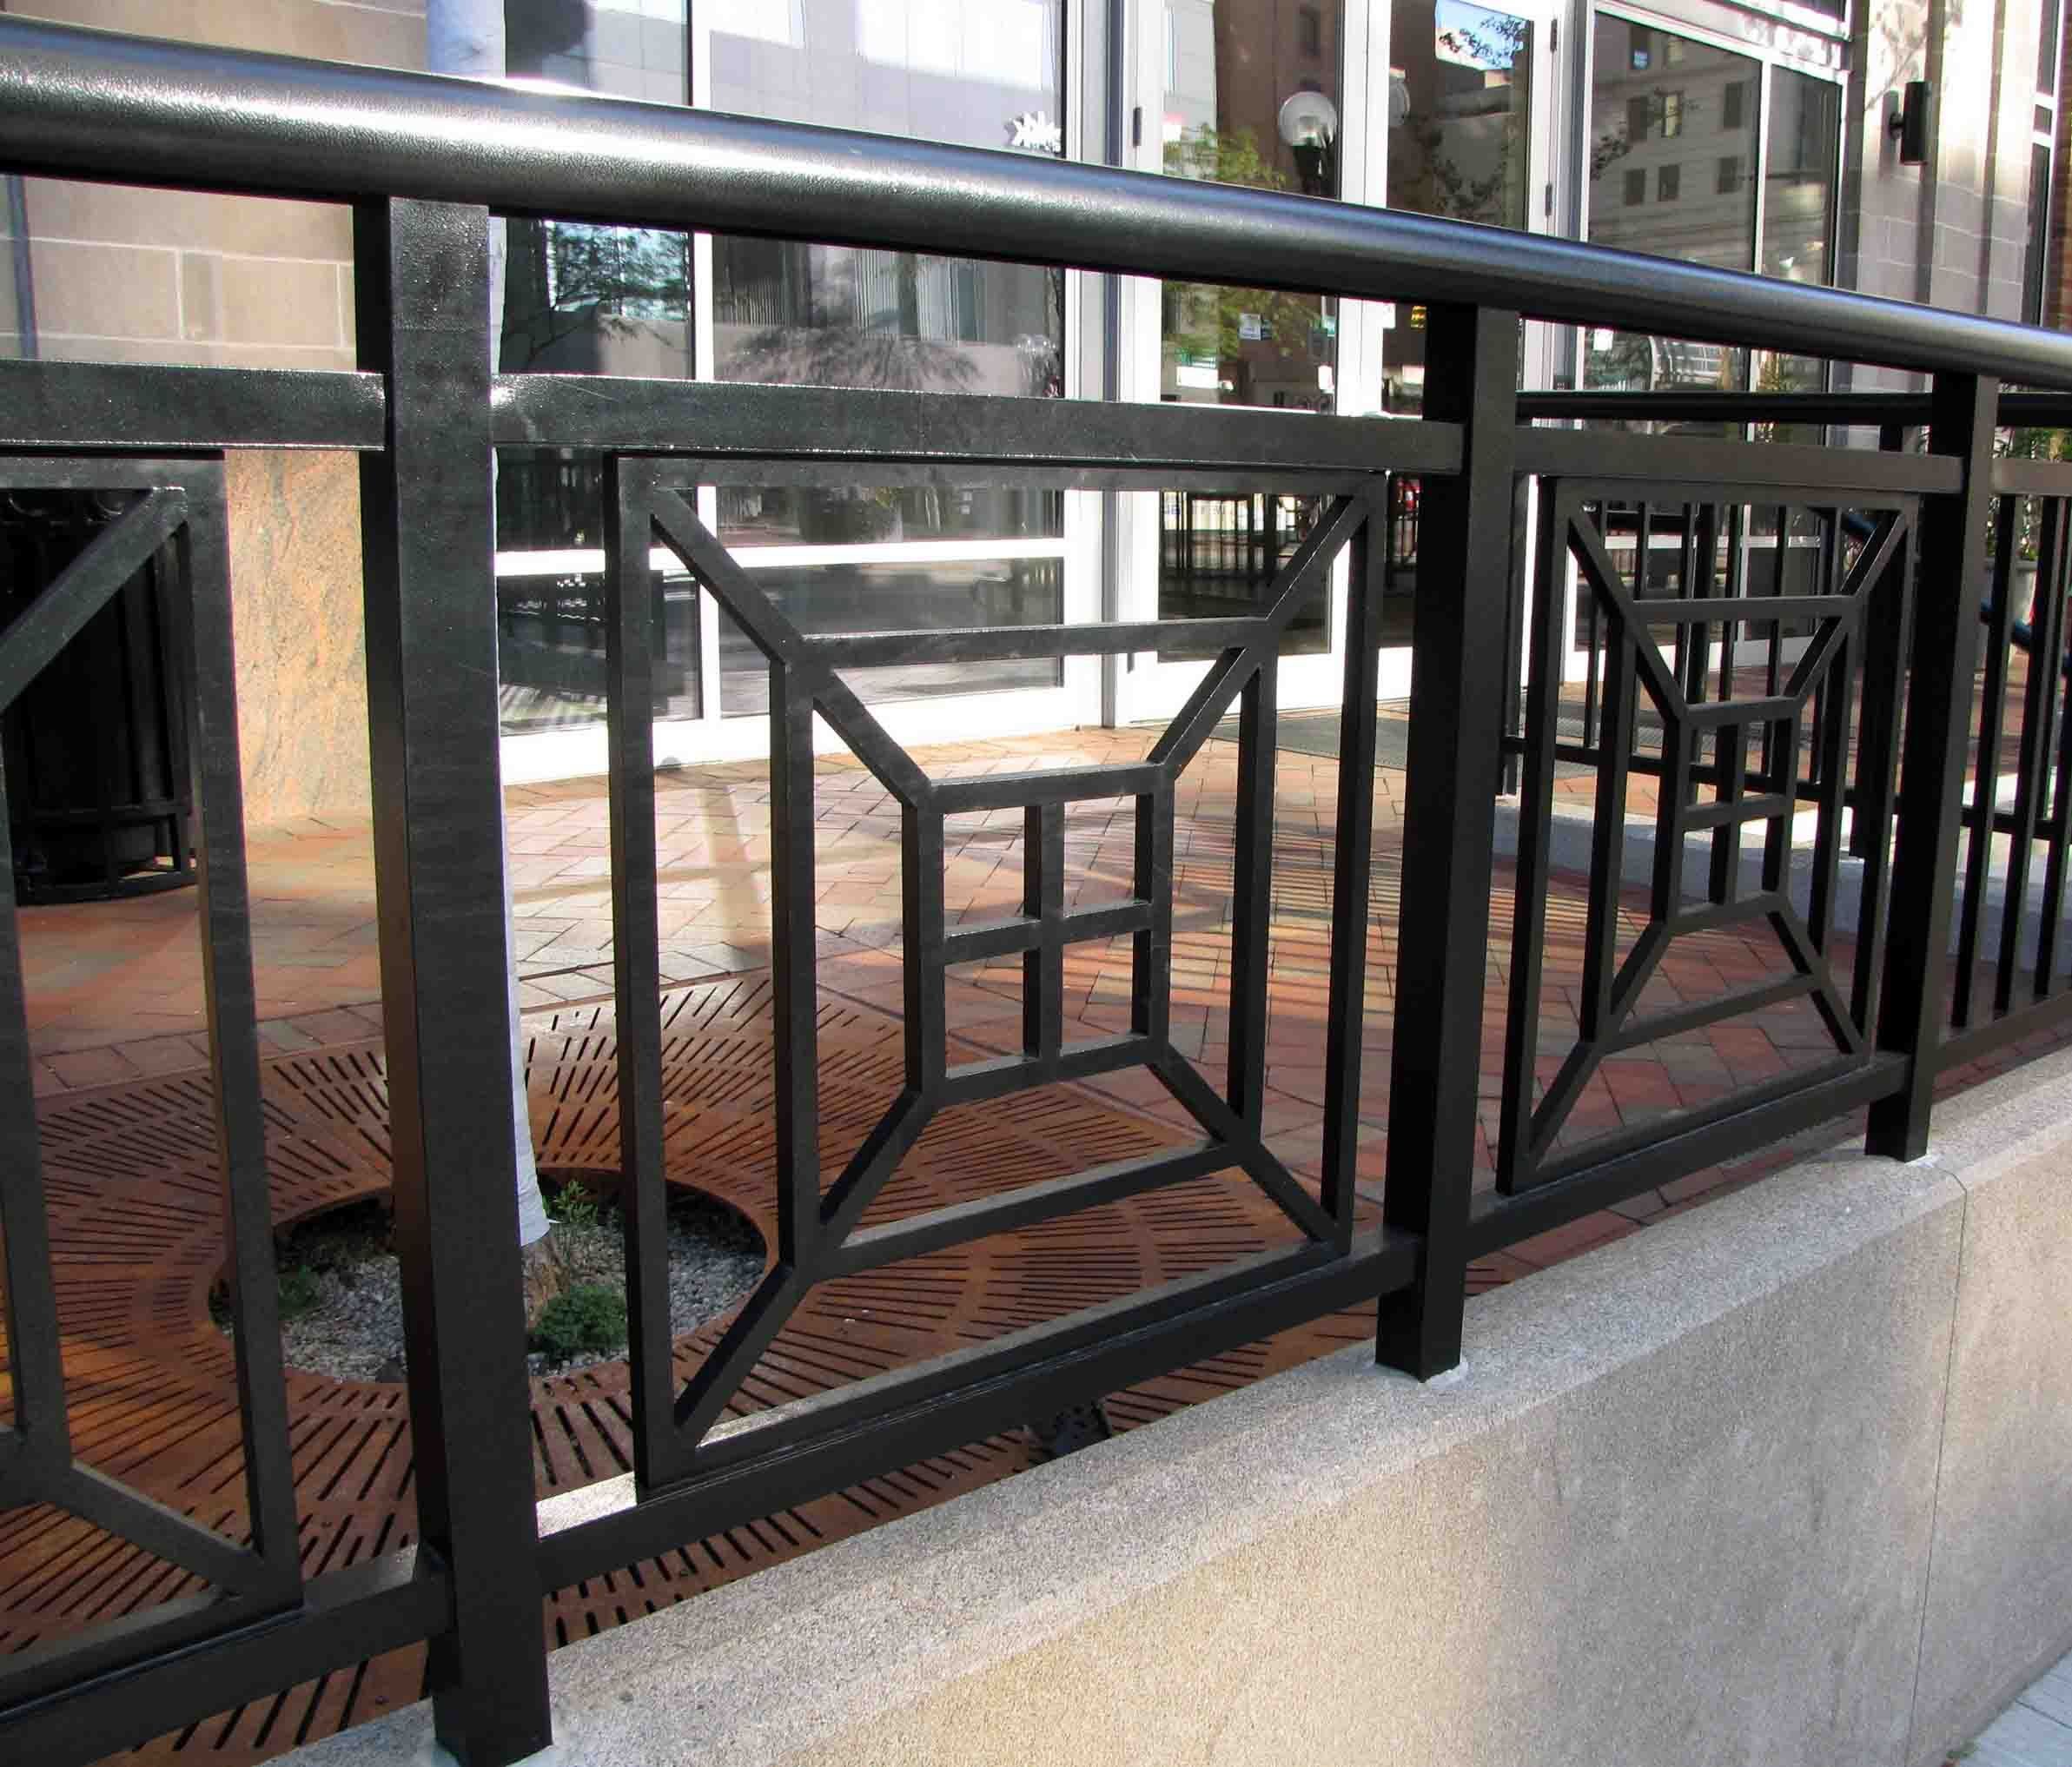 Photos Of Railing For Outside Steps Exterior Steel Rails | Metal Handrails For Stairs Exterior | Outdoor Stair | Simplified Building | Porch | Deck Railing | Handrail Ideas